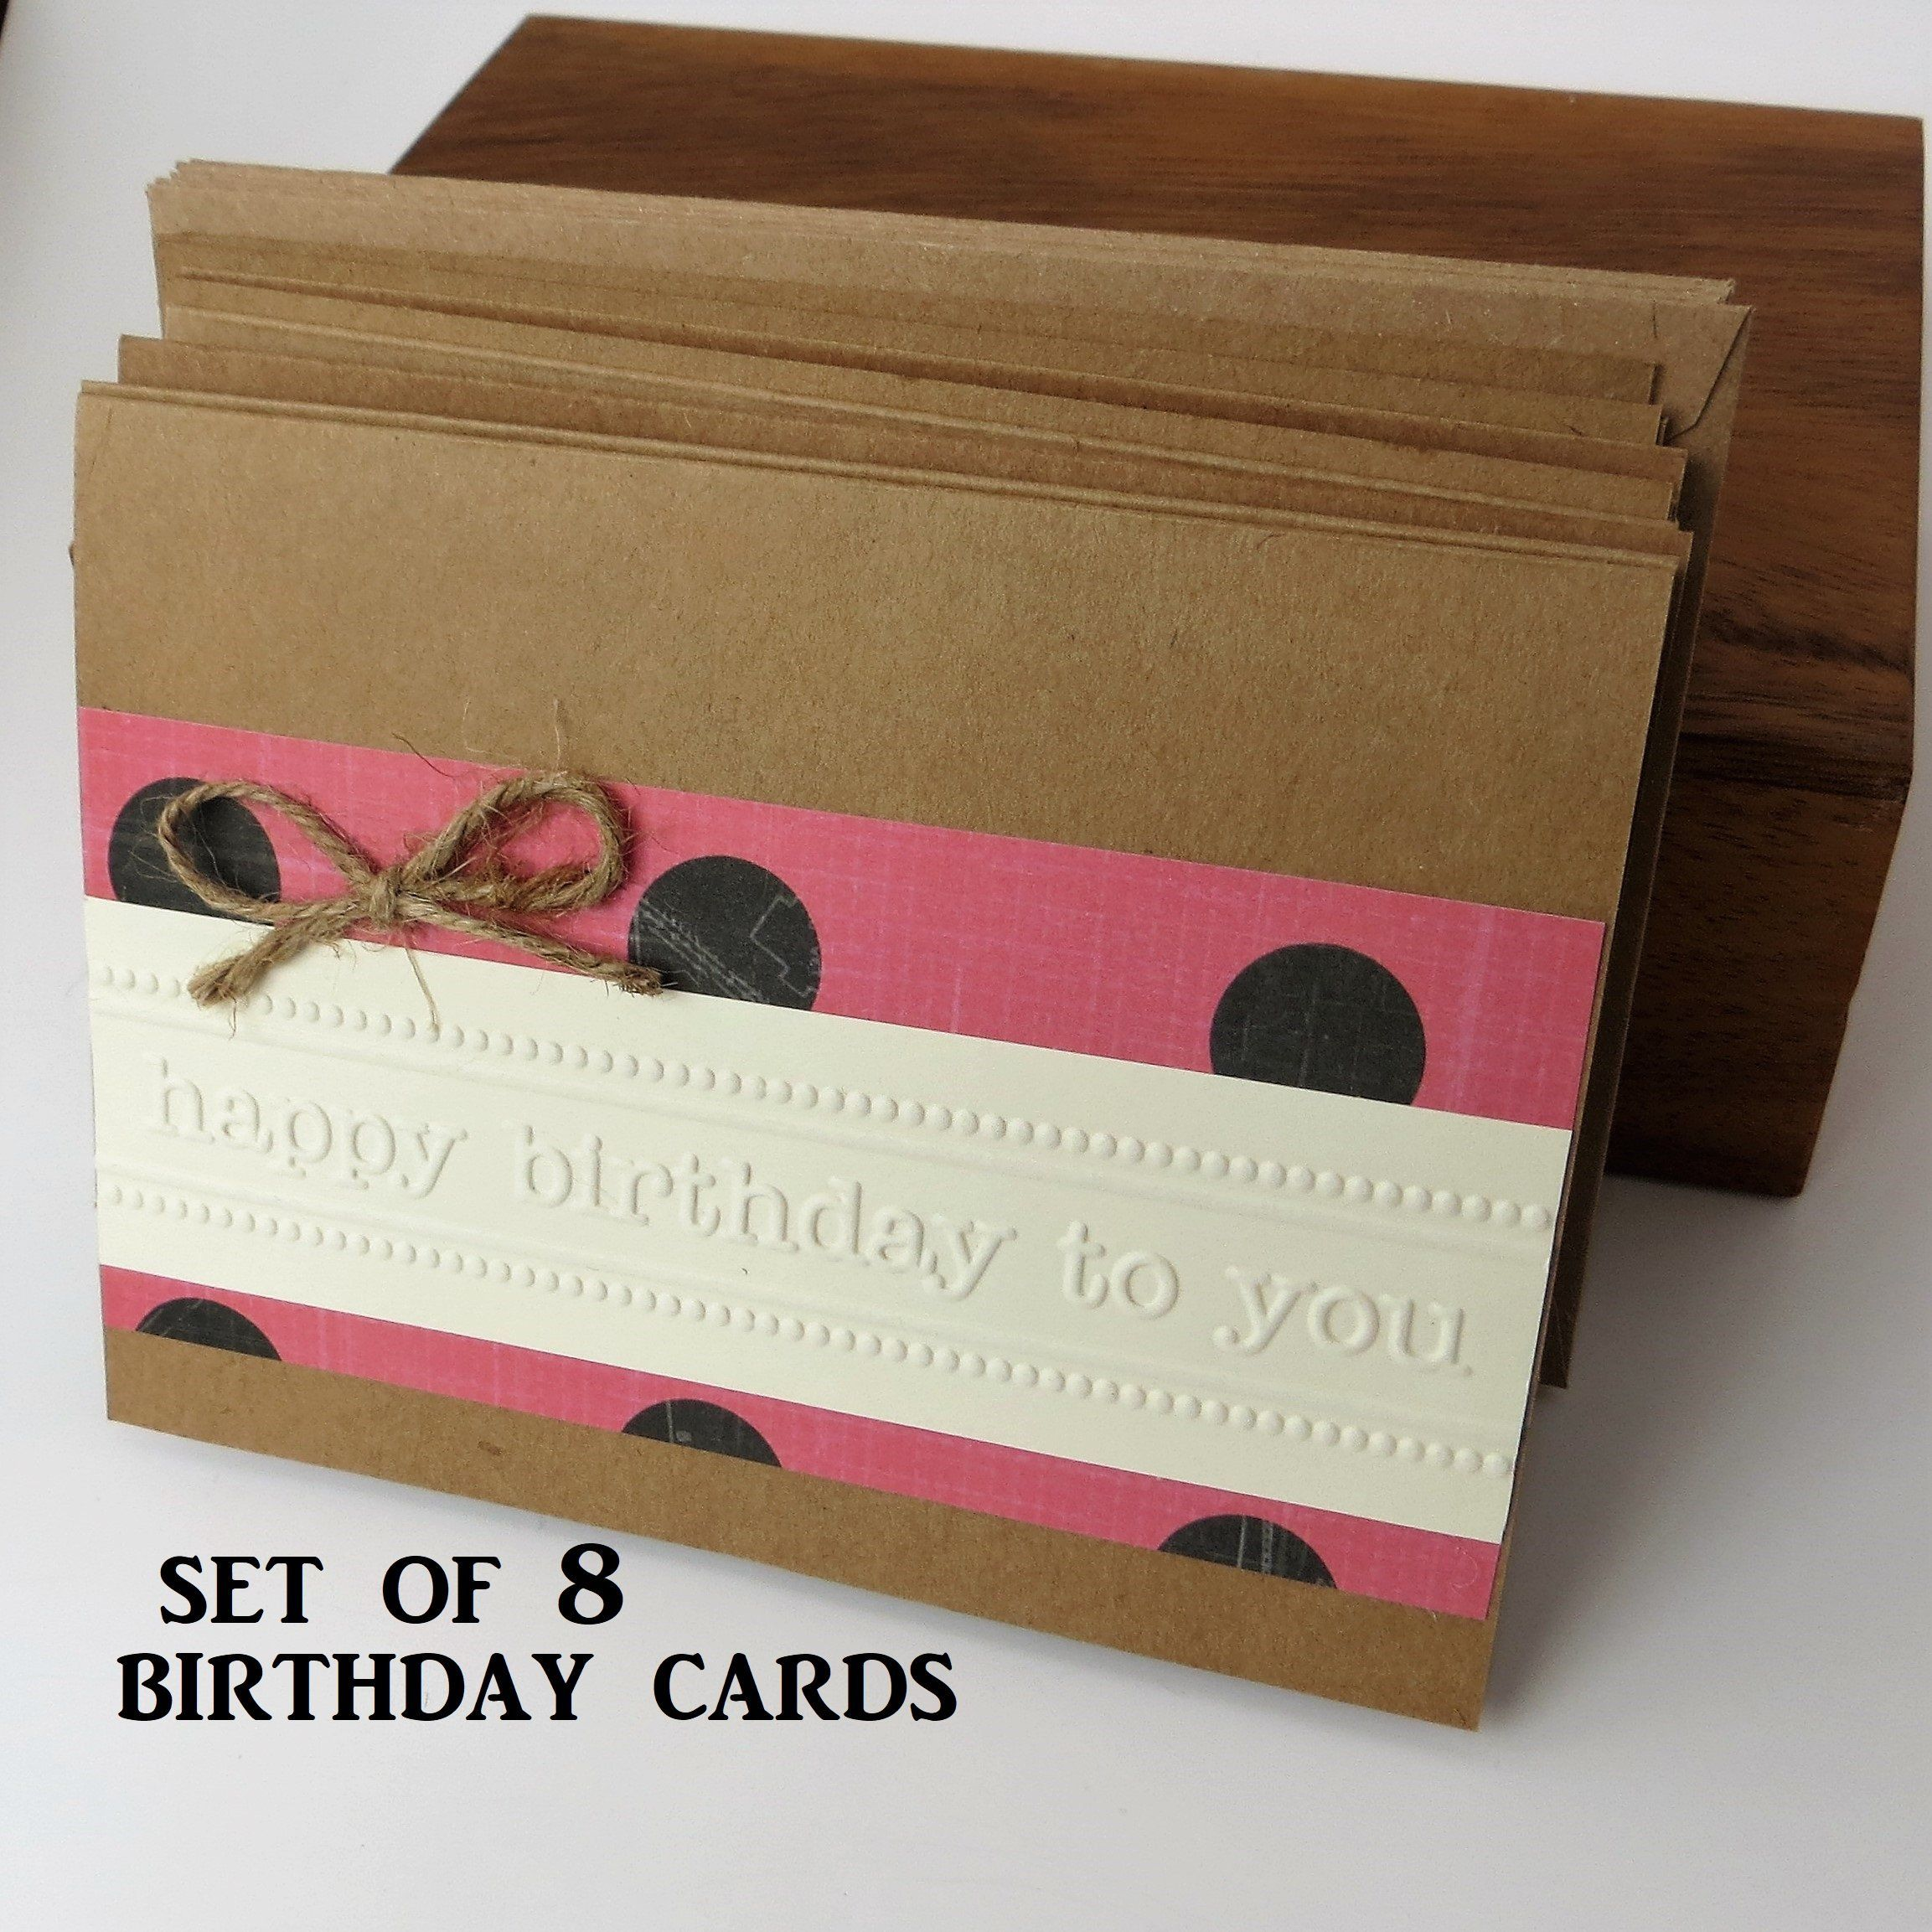 Bulk Set Of Birthday Cards Nothing Says Love Like Handmade These Cards Are Embossed With Happ Birthday Cards Birthday Cards For Friends Birthday Card Design